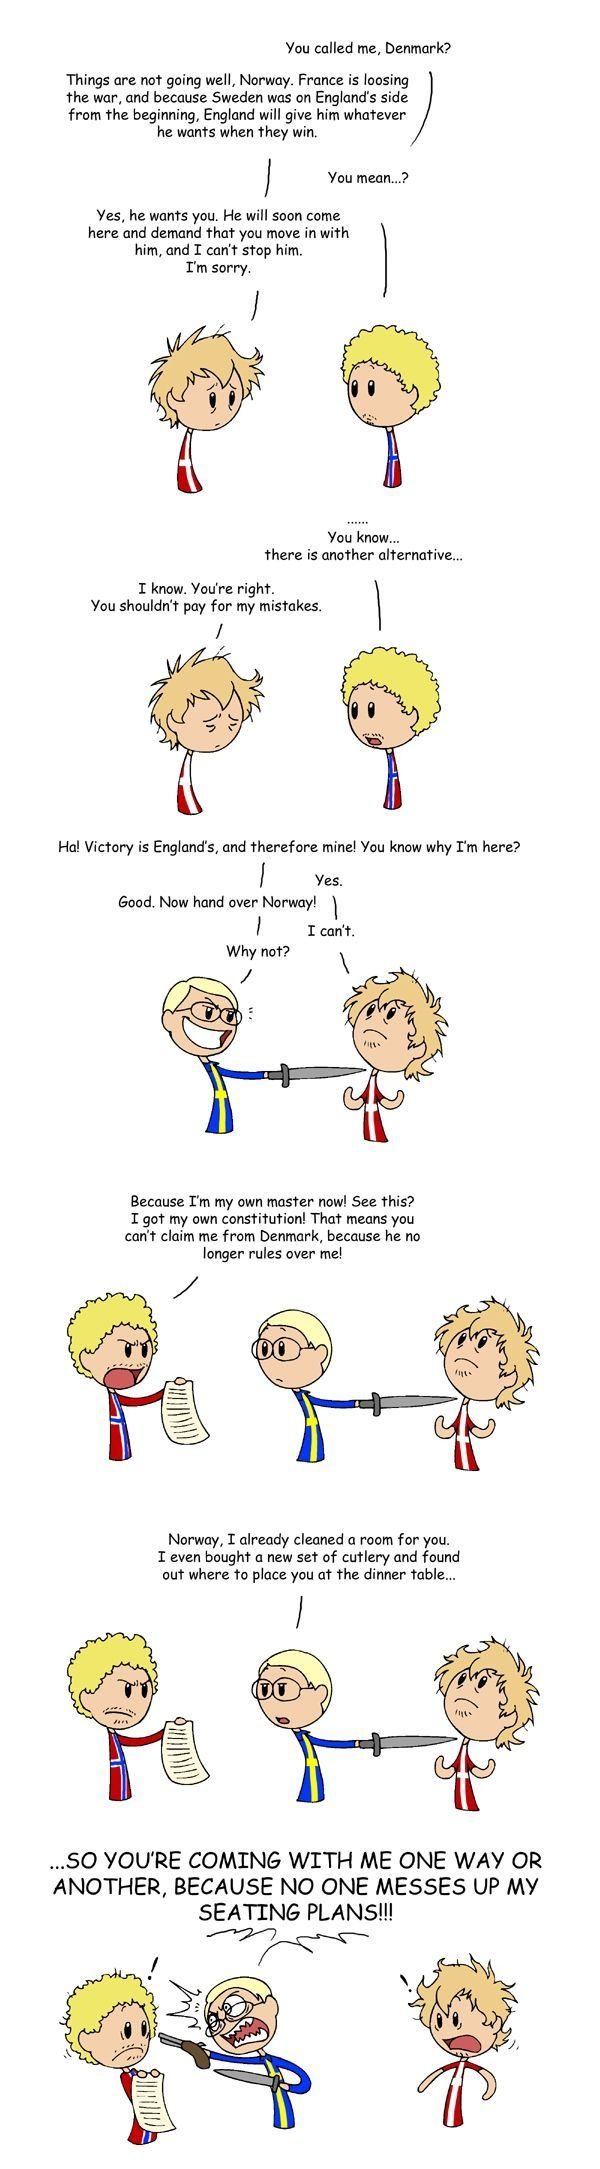 Funny No On Messes Up With His Seating Plans Scandinavia Satw Comic Scandinavian